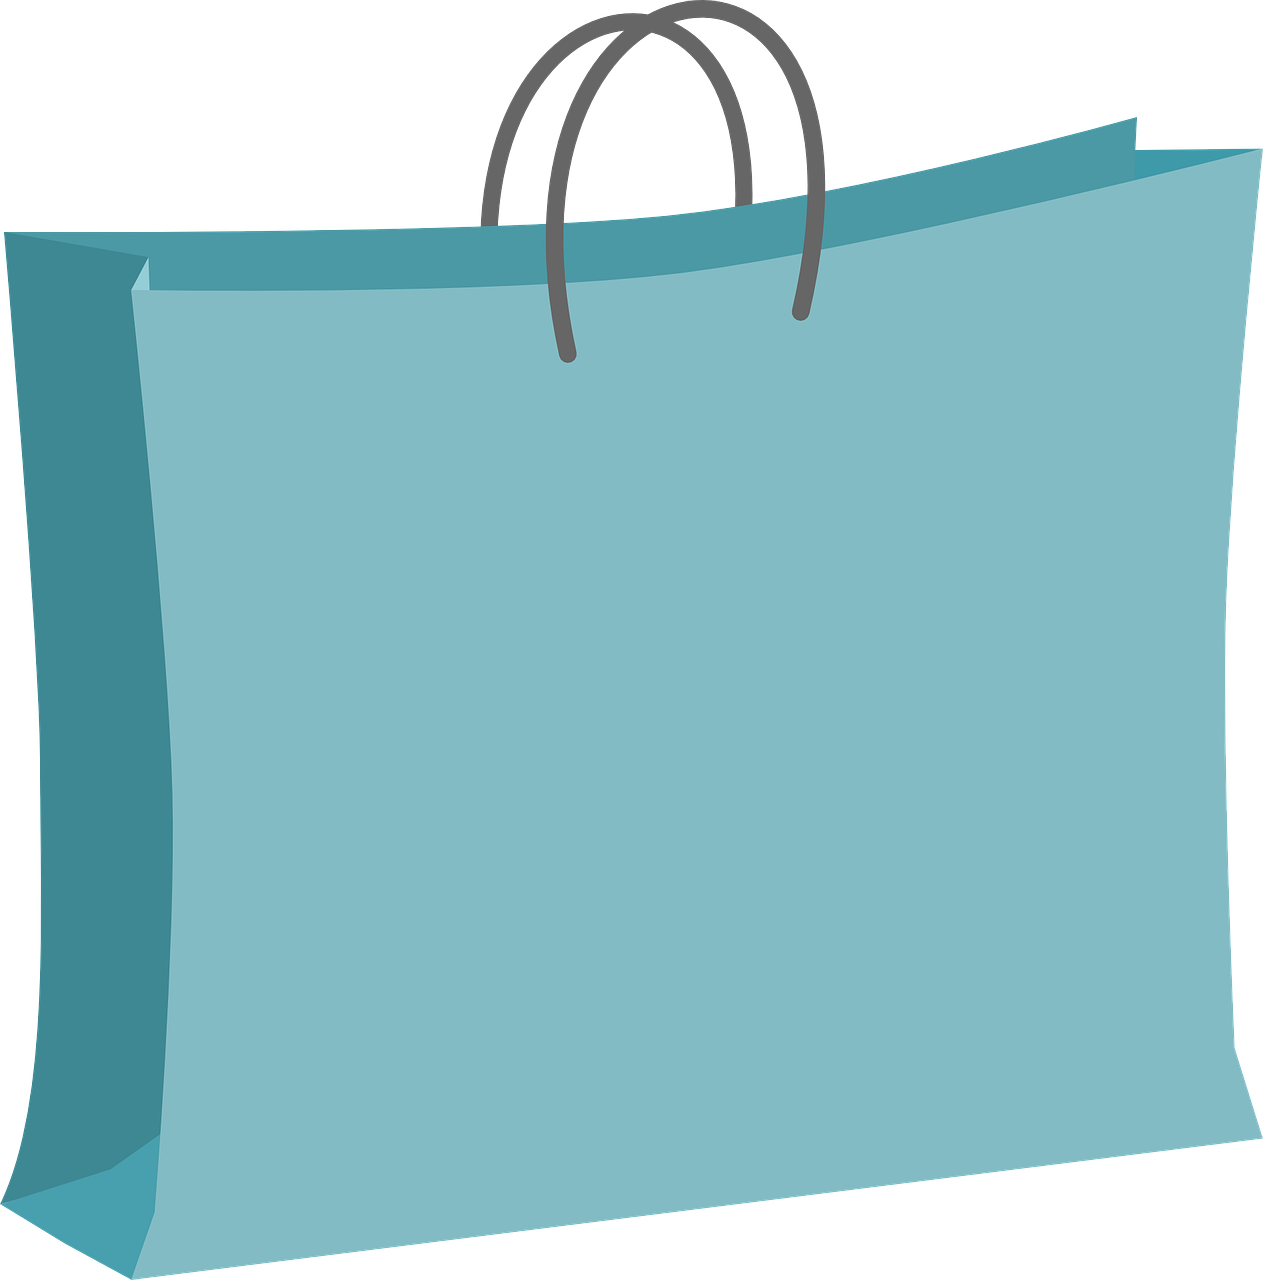 Are you looking for a clip art of a shopping bag for use on your shopping projects? Search no more as you can use this green shopping bag clip art for ...